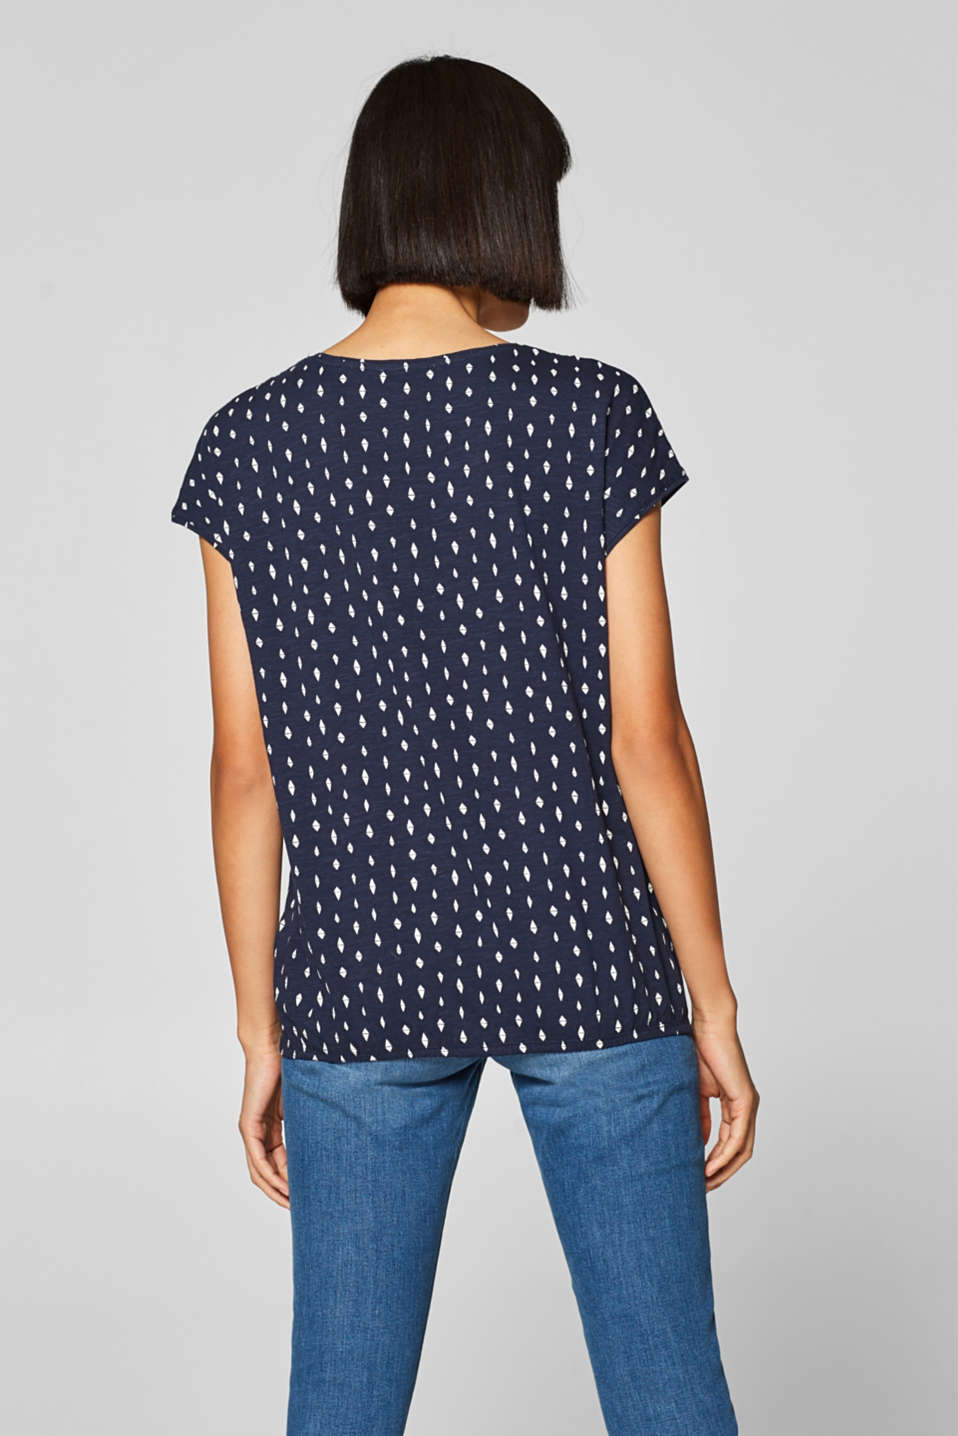 Printed top with an elasticated waistband, 100% cotton, NAVY, detail image number 3